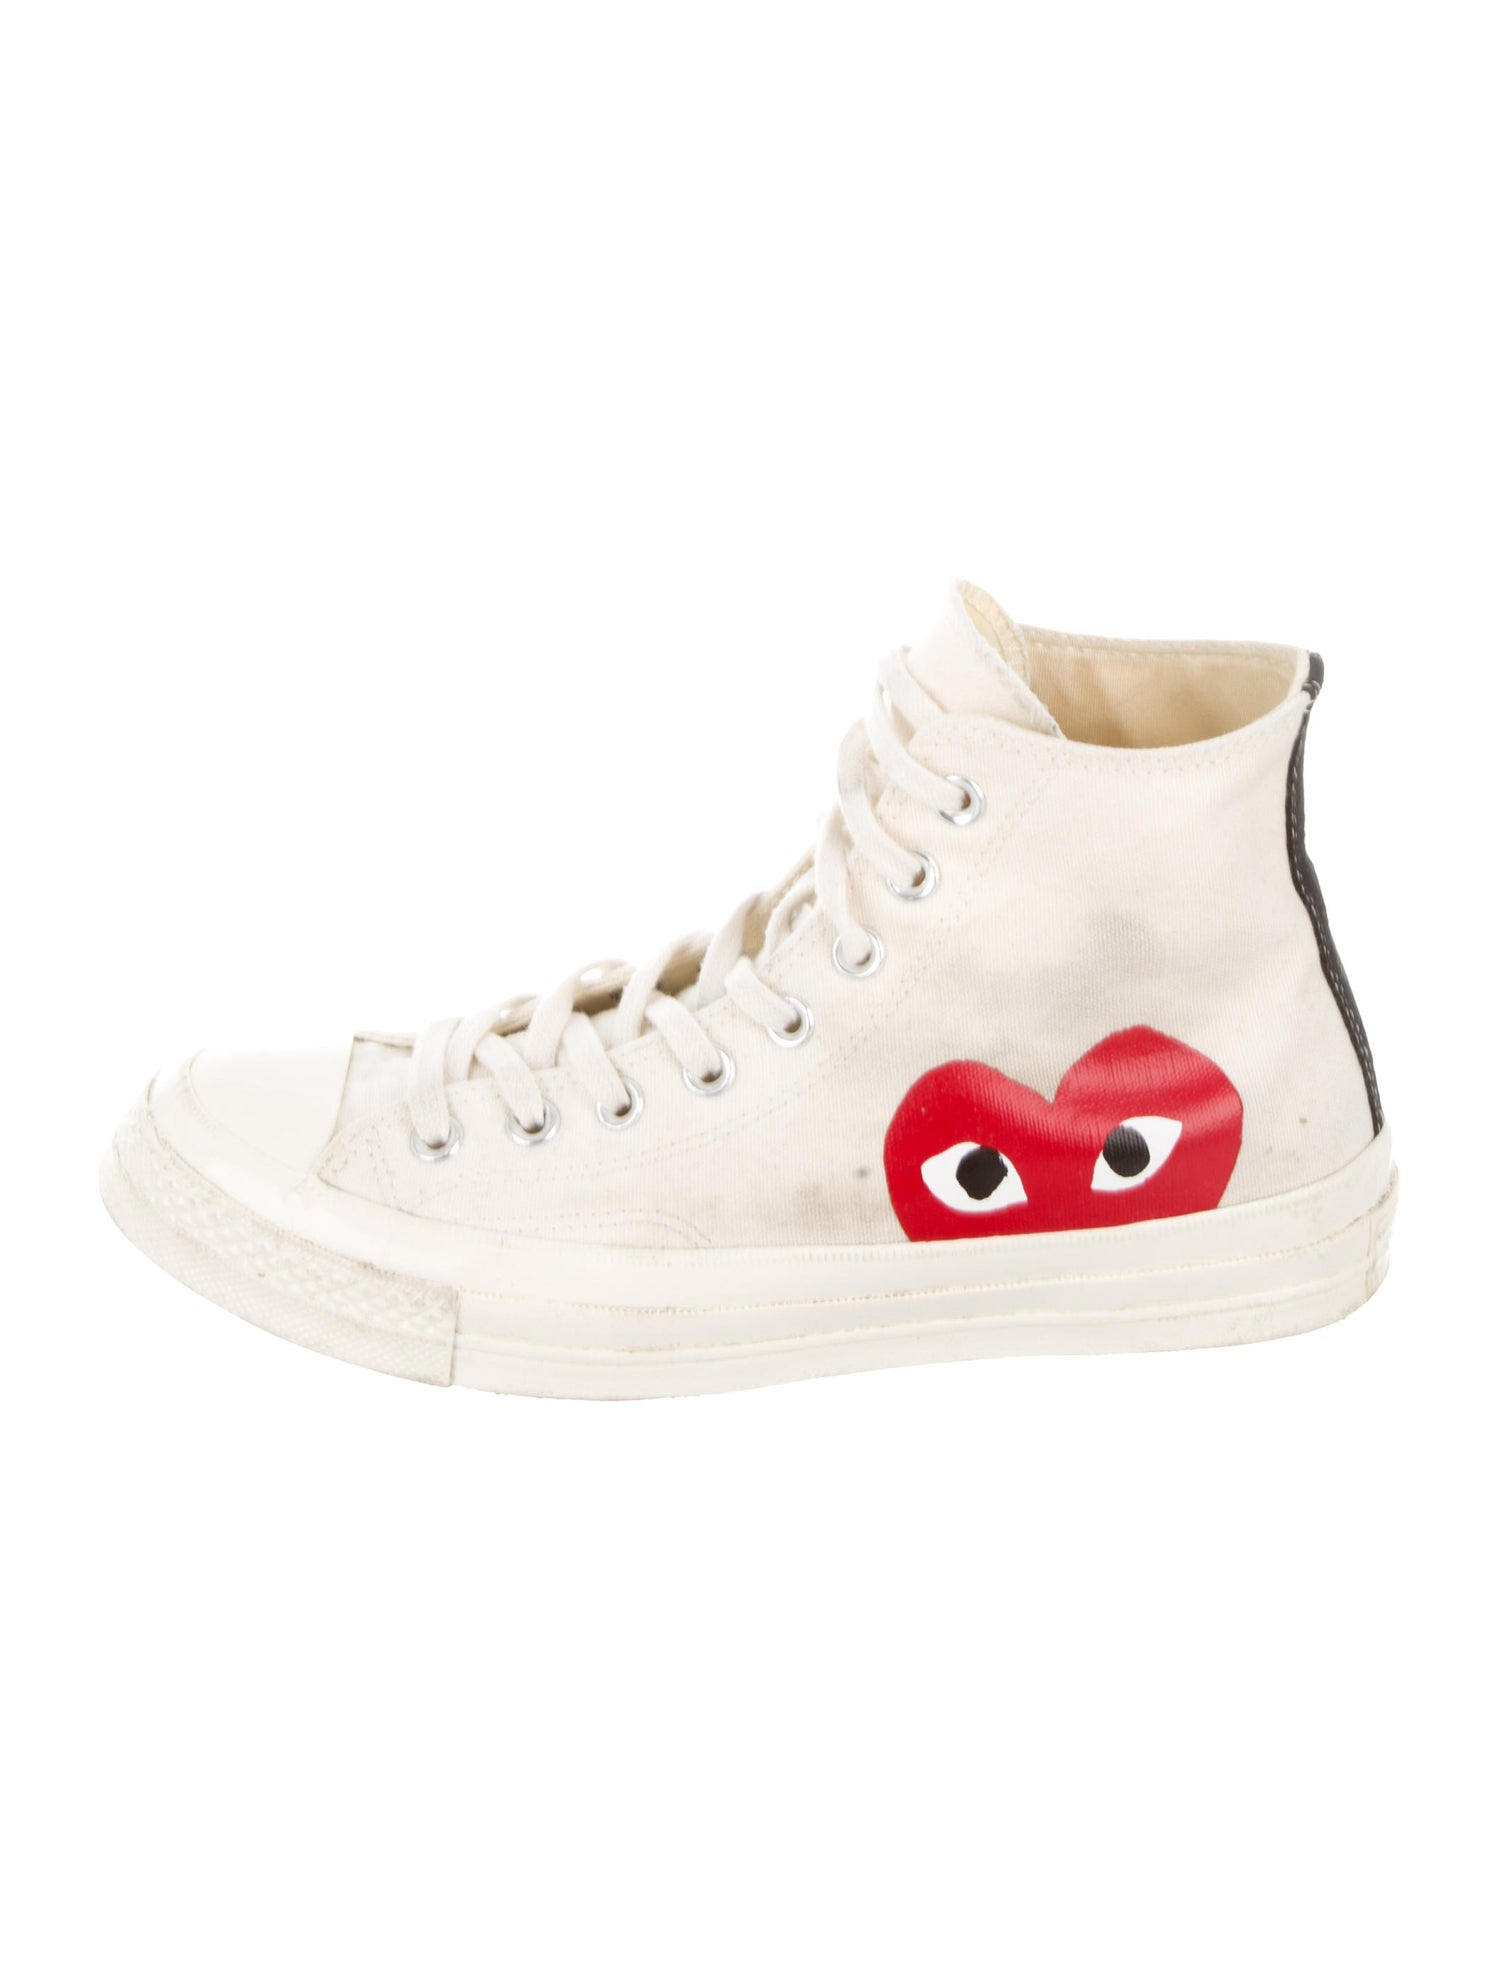 70 Heart Sneakers - Comme Des Garcons Play / Converse, $95